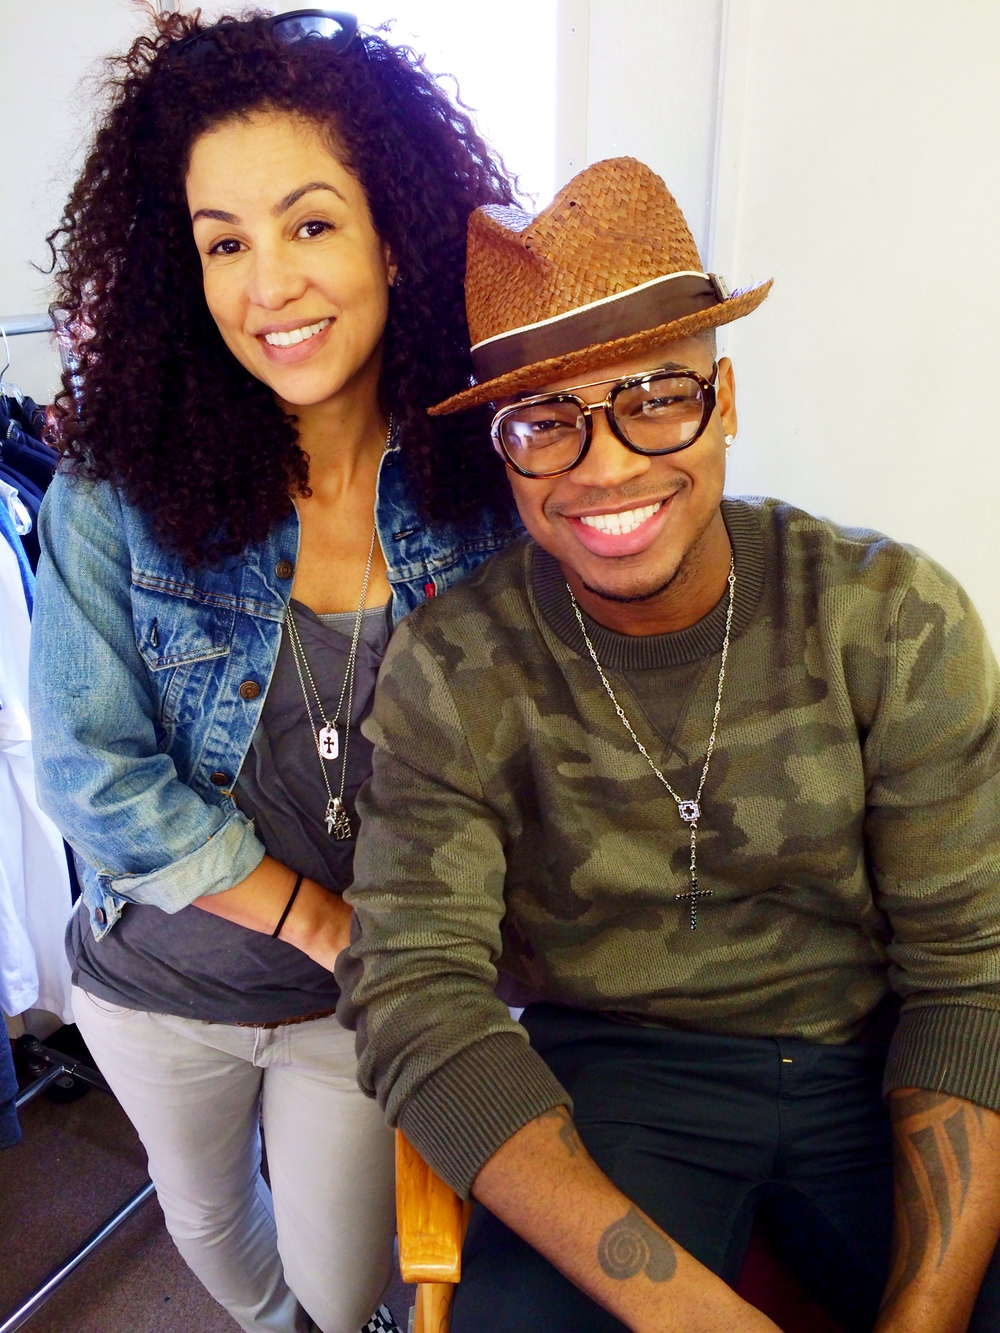 Melissa Meister and NeYo.JPG